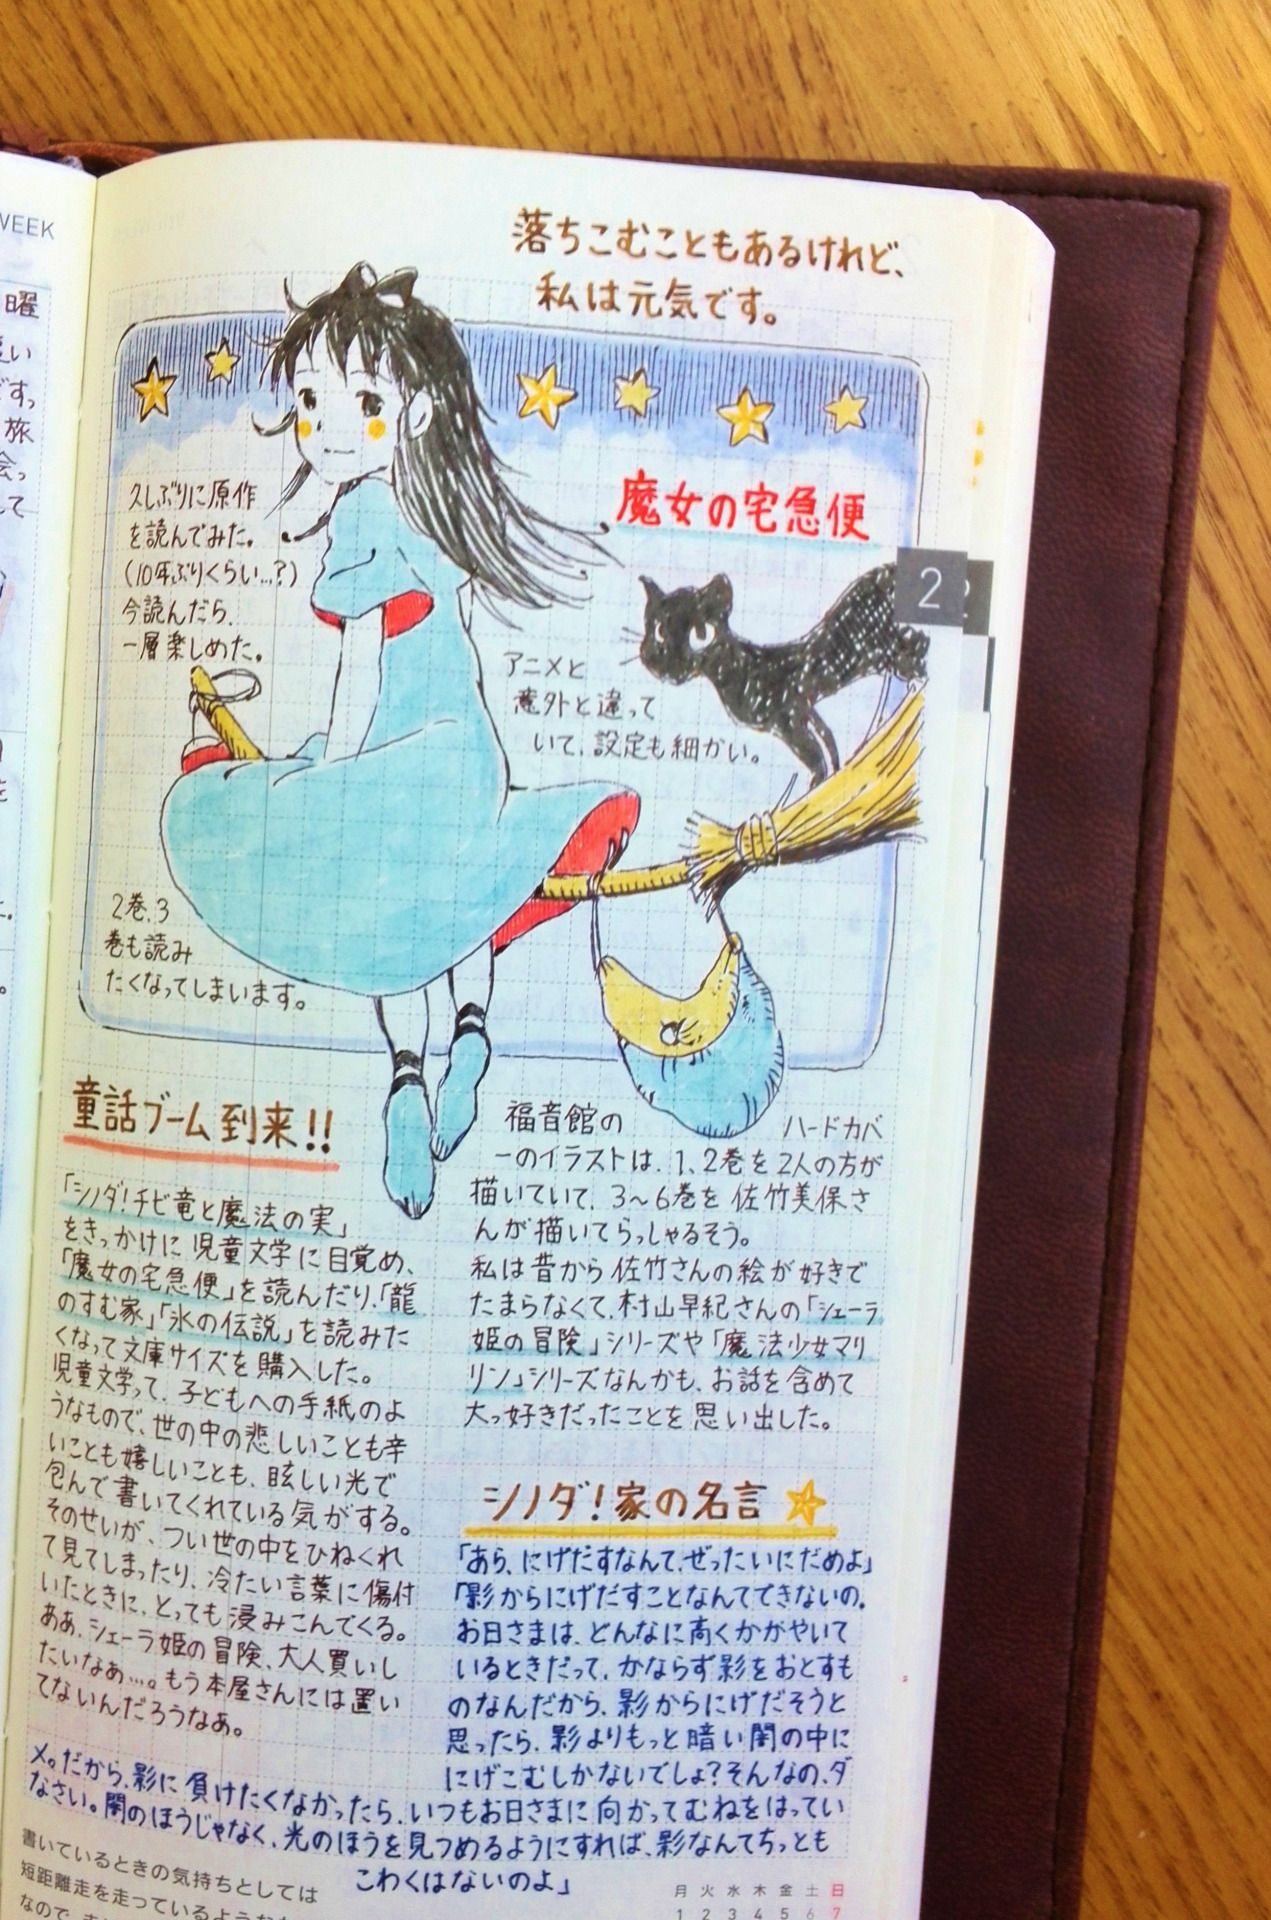 Kiki Delivery Service 可愛い字 アートジャーナル かわいい手帳